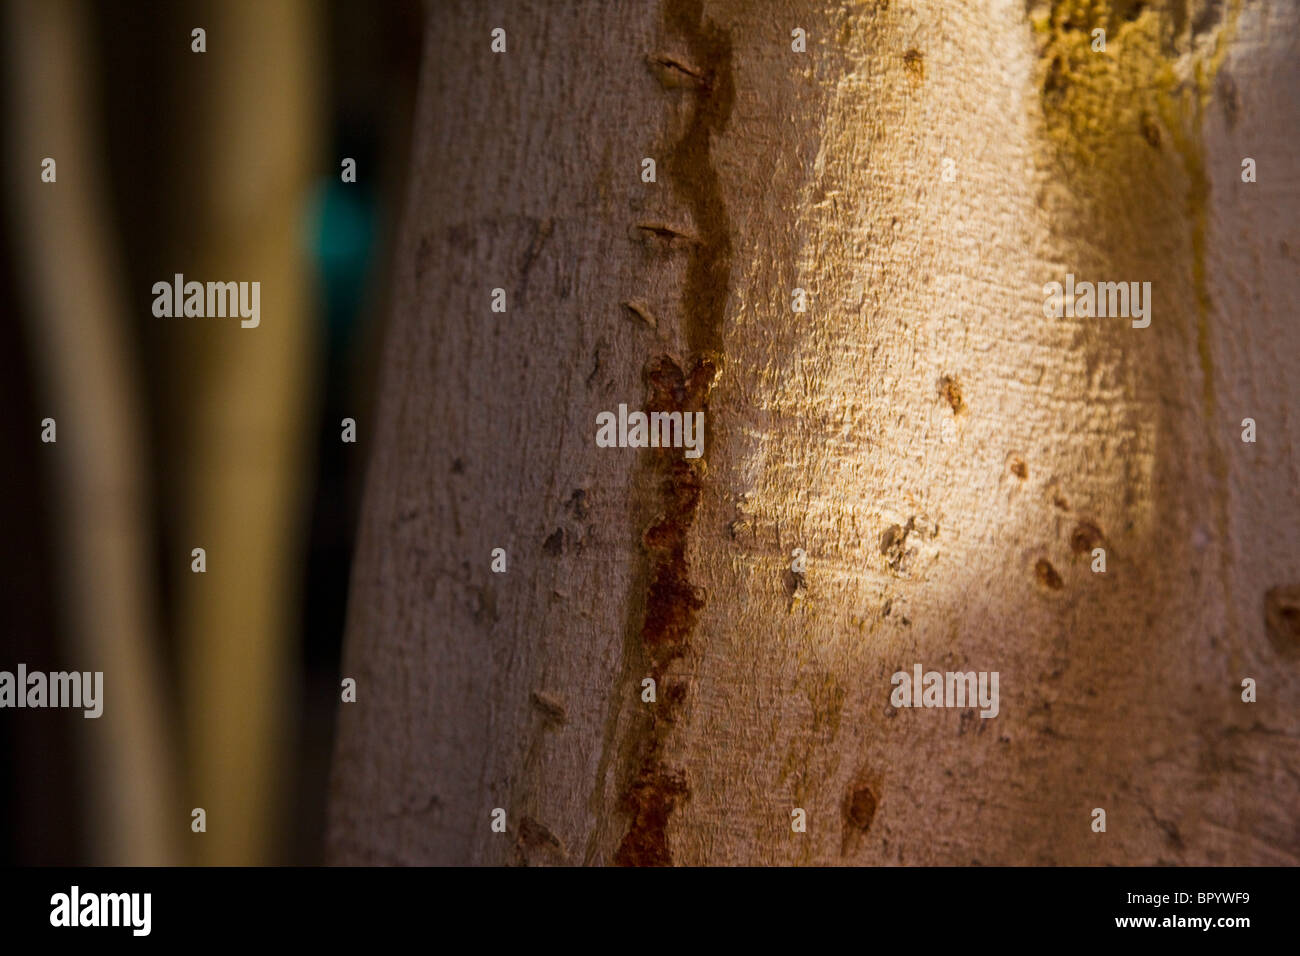 Closeup of a tree's stamp - Stock Image